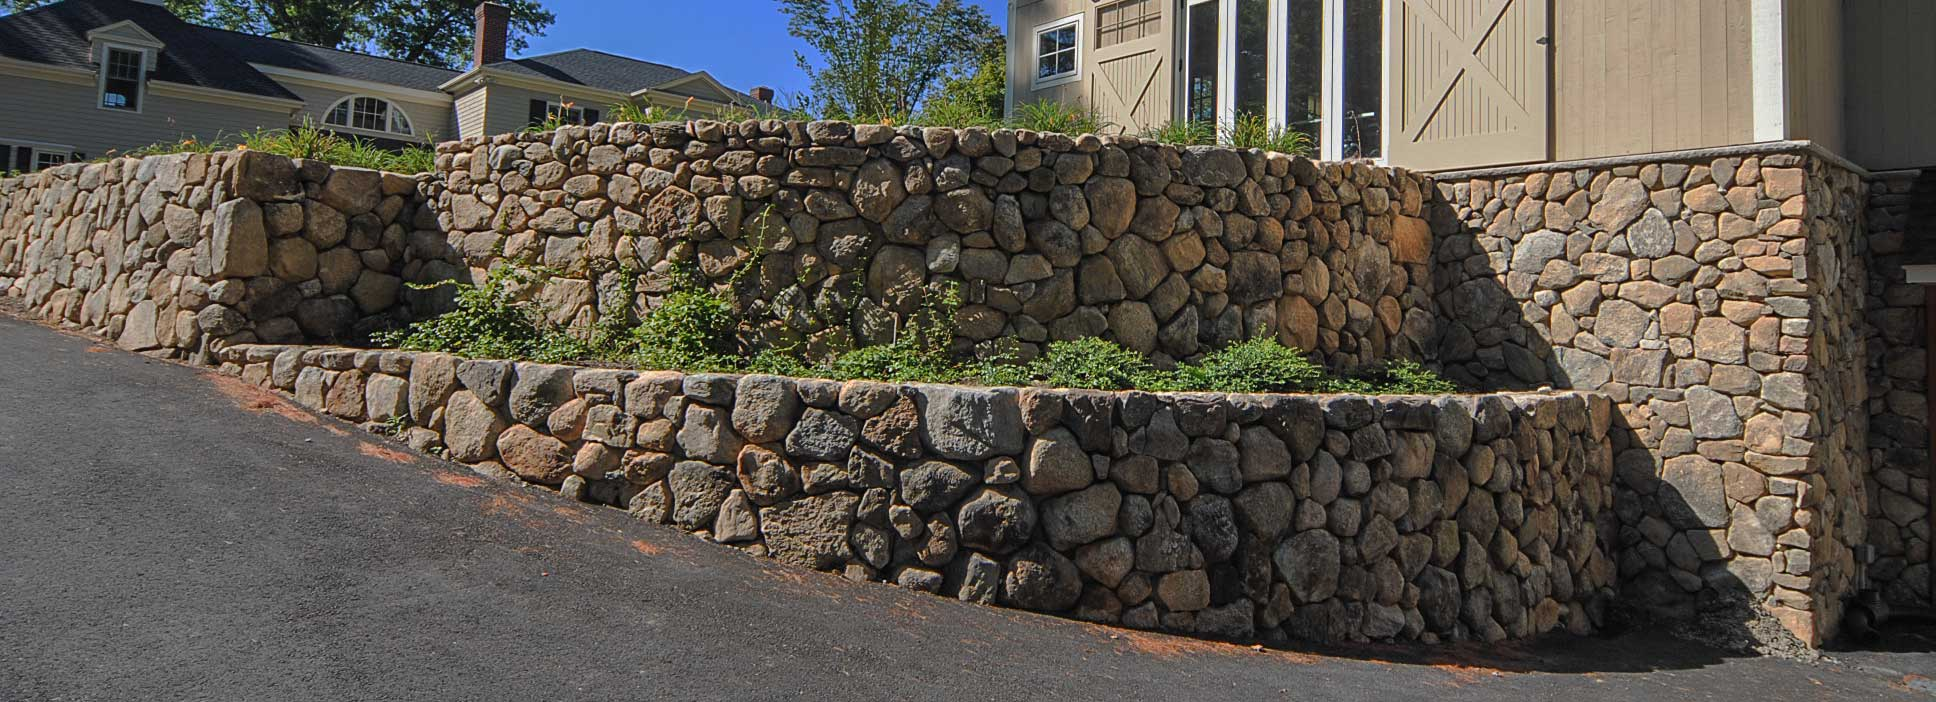 Residential Natural Stone : Residential natural stone walls retaining